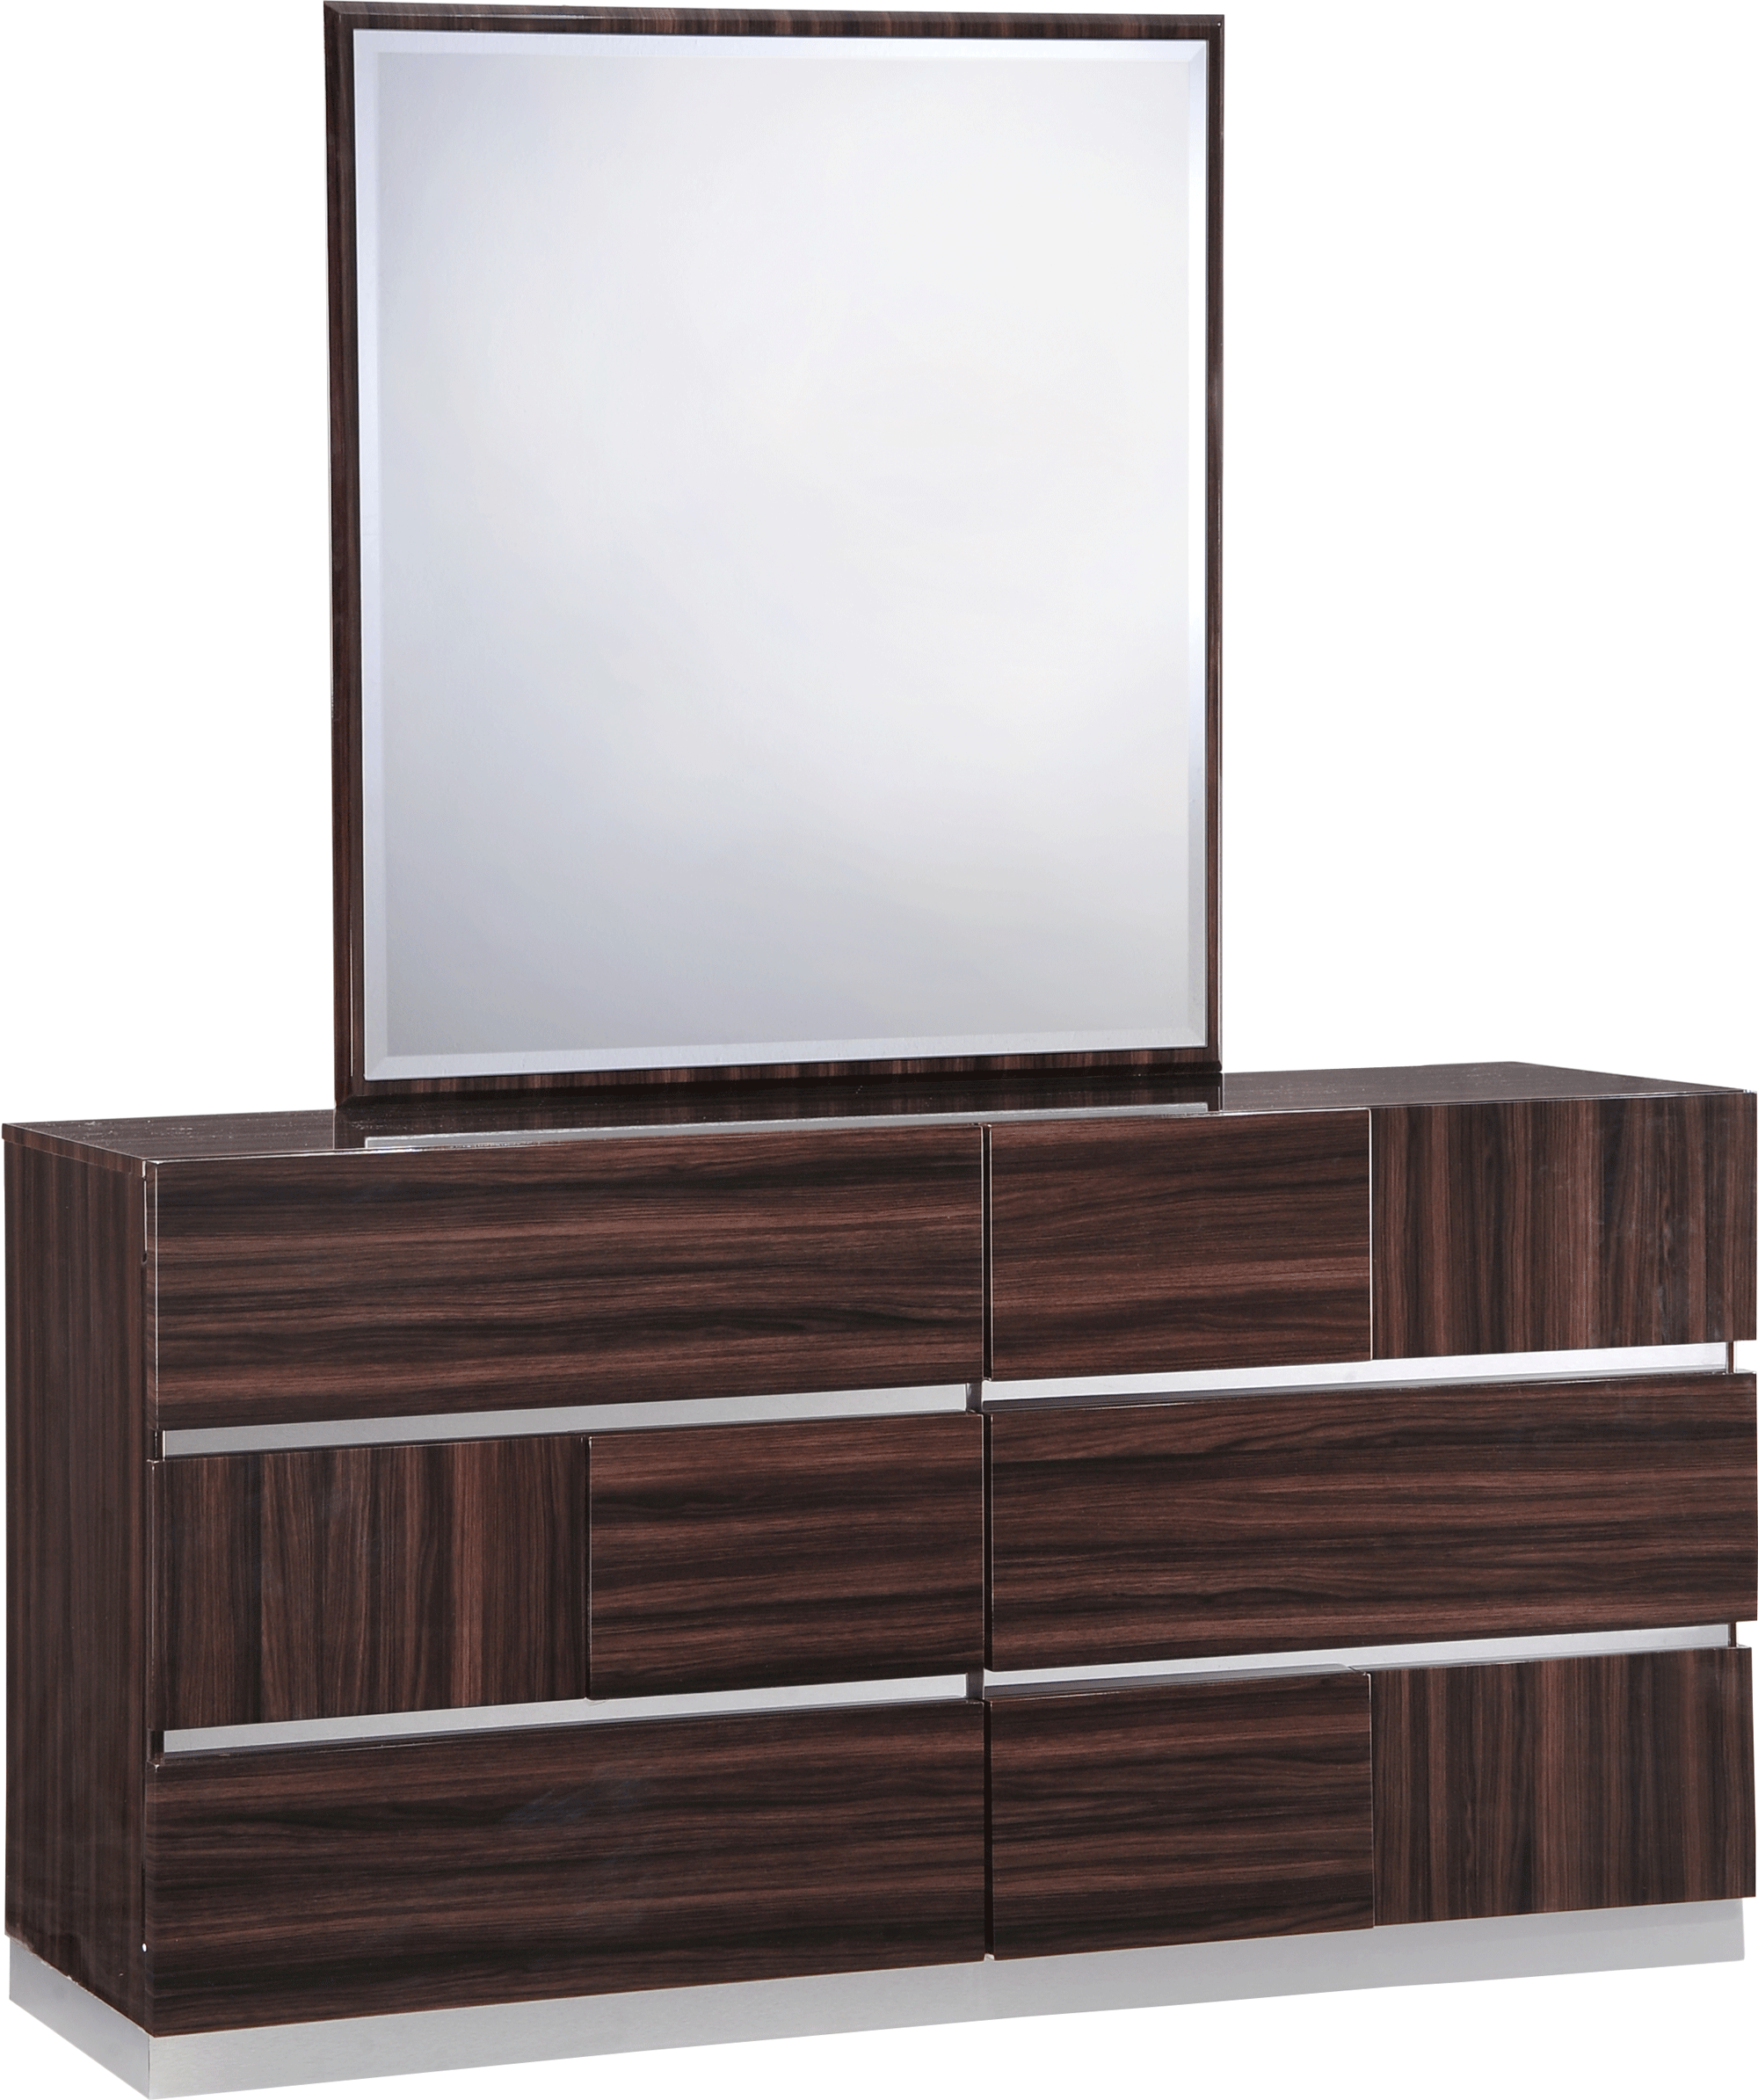 . Tribeca Wood Grain Glossy Bedroom Set by Global Furniture